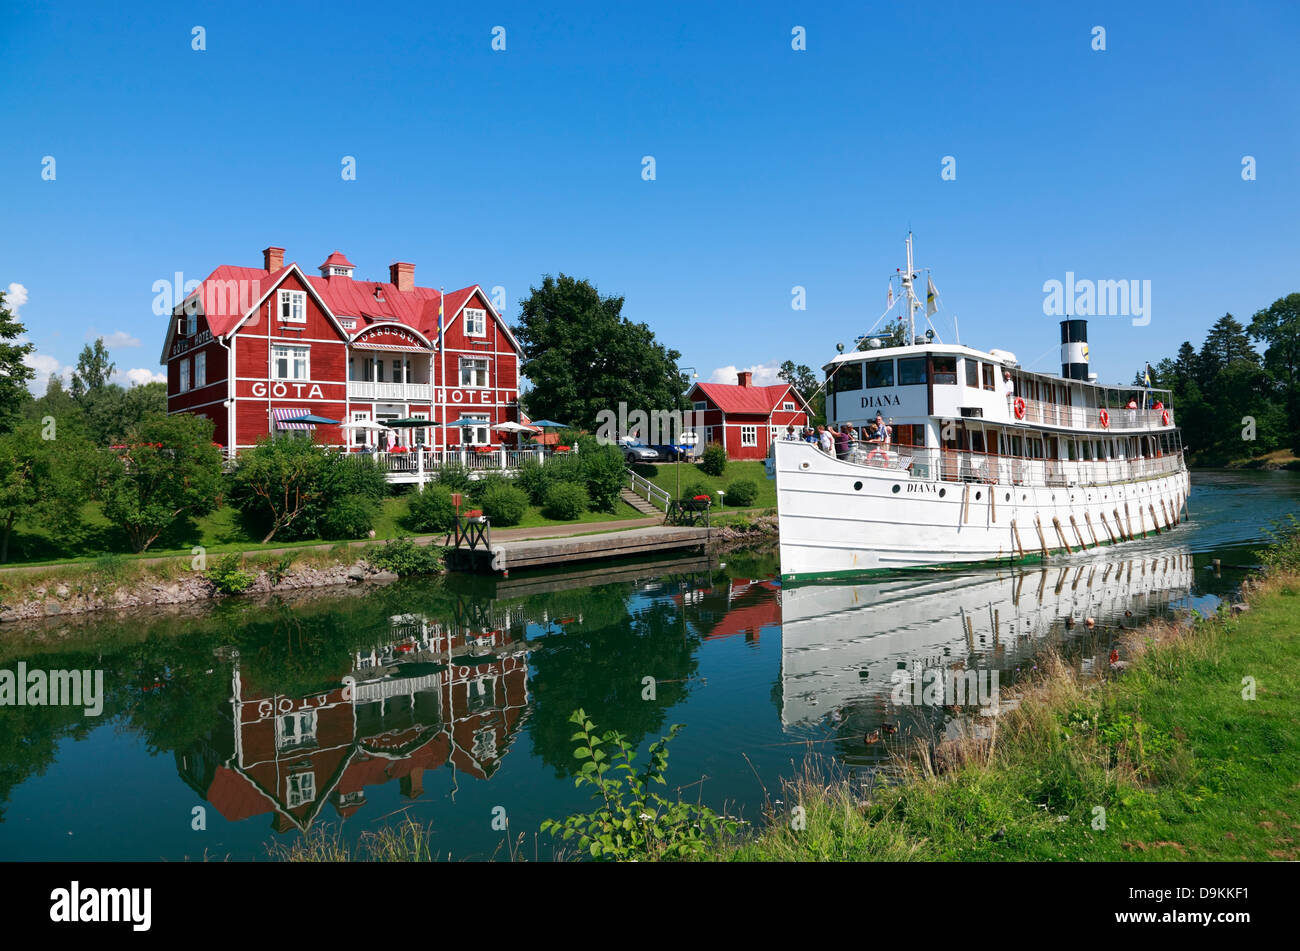 Old passenger steamship DIANA on the Gota Canal at Borensberg, infront of GOETA-HOTELL, Sweden, Scandinavia - Stock Image